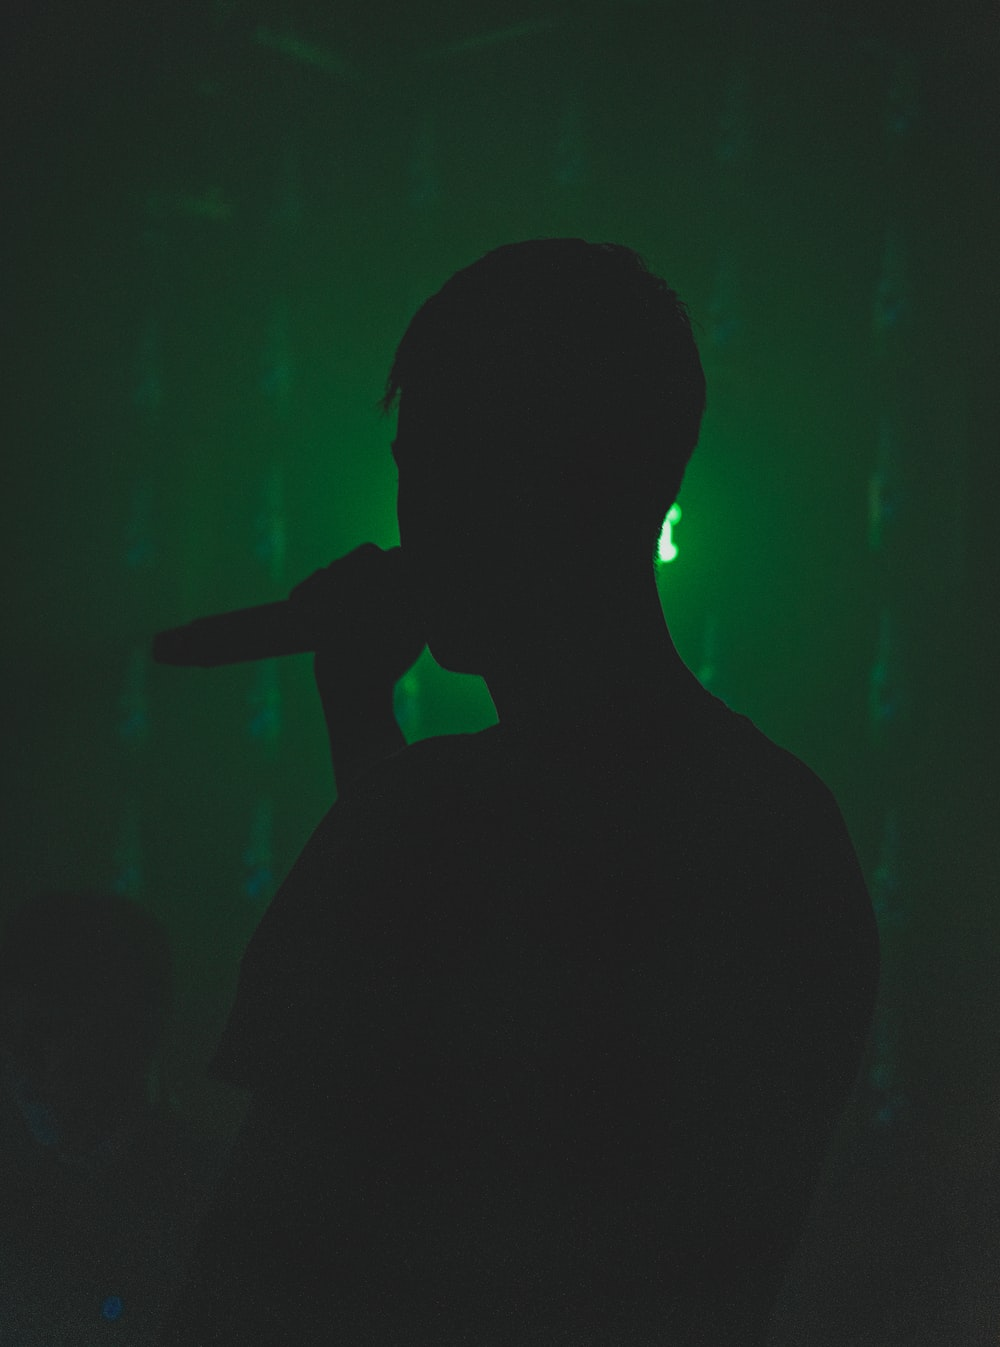 silhouette of person holding microphone